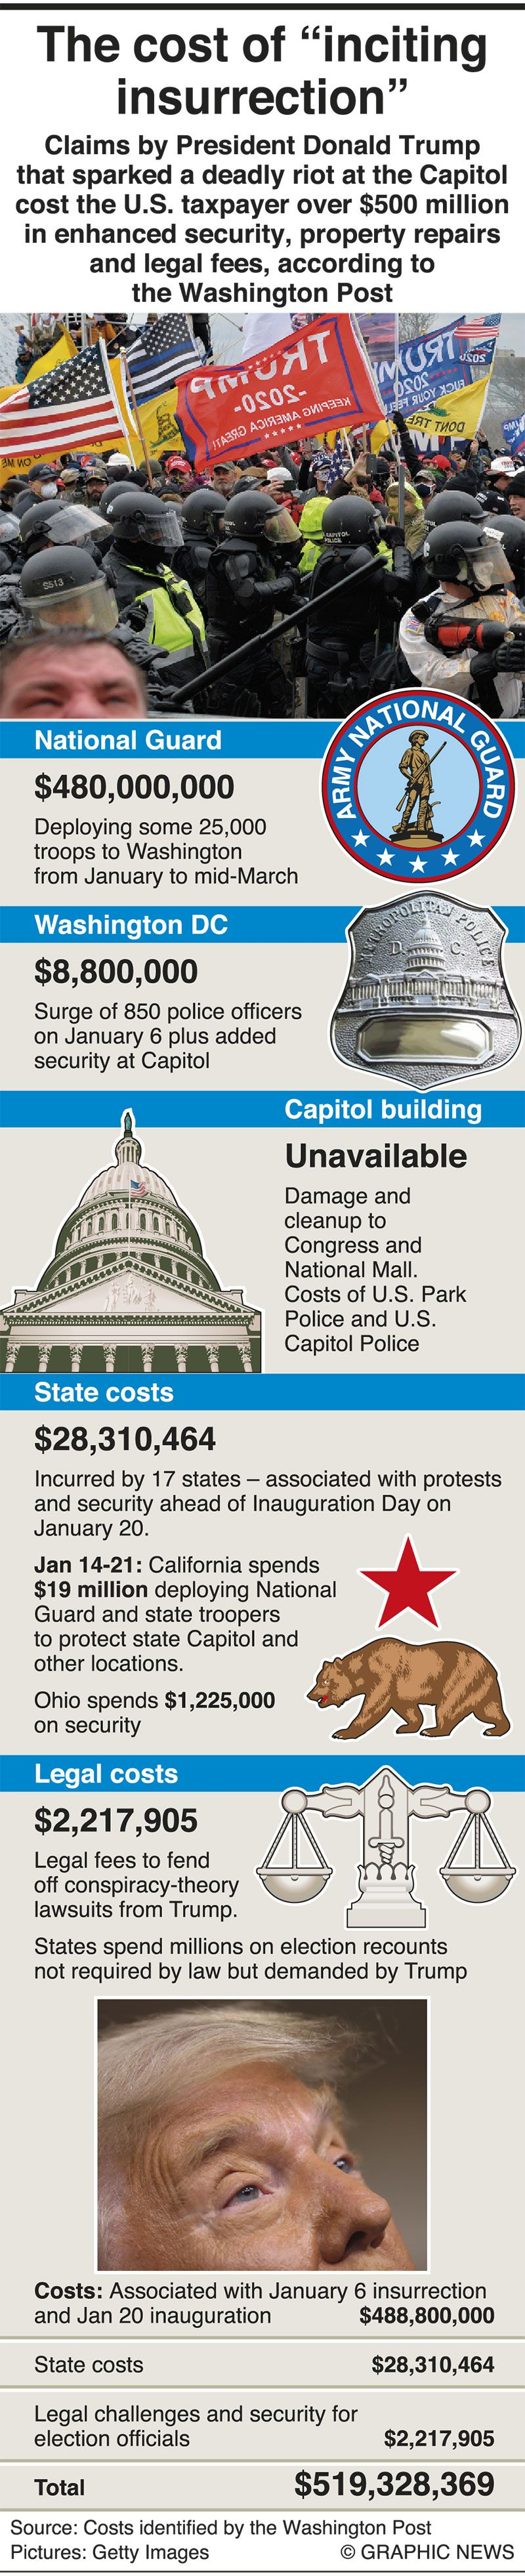 The cost of 'inciting insurrection' at the US Capitol